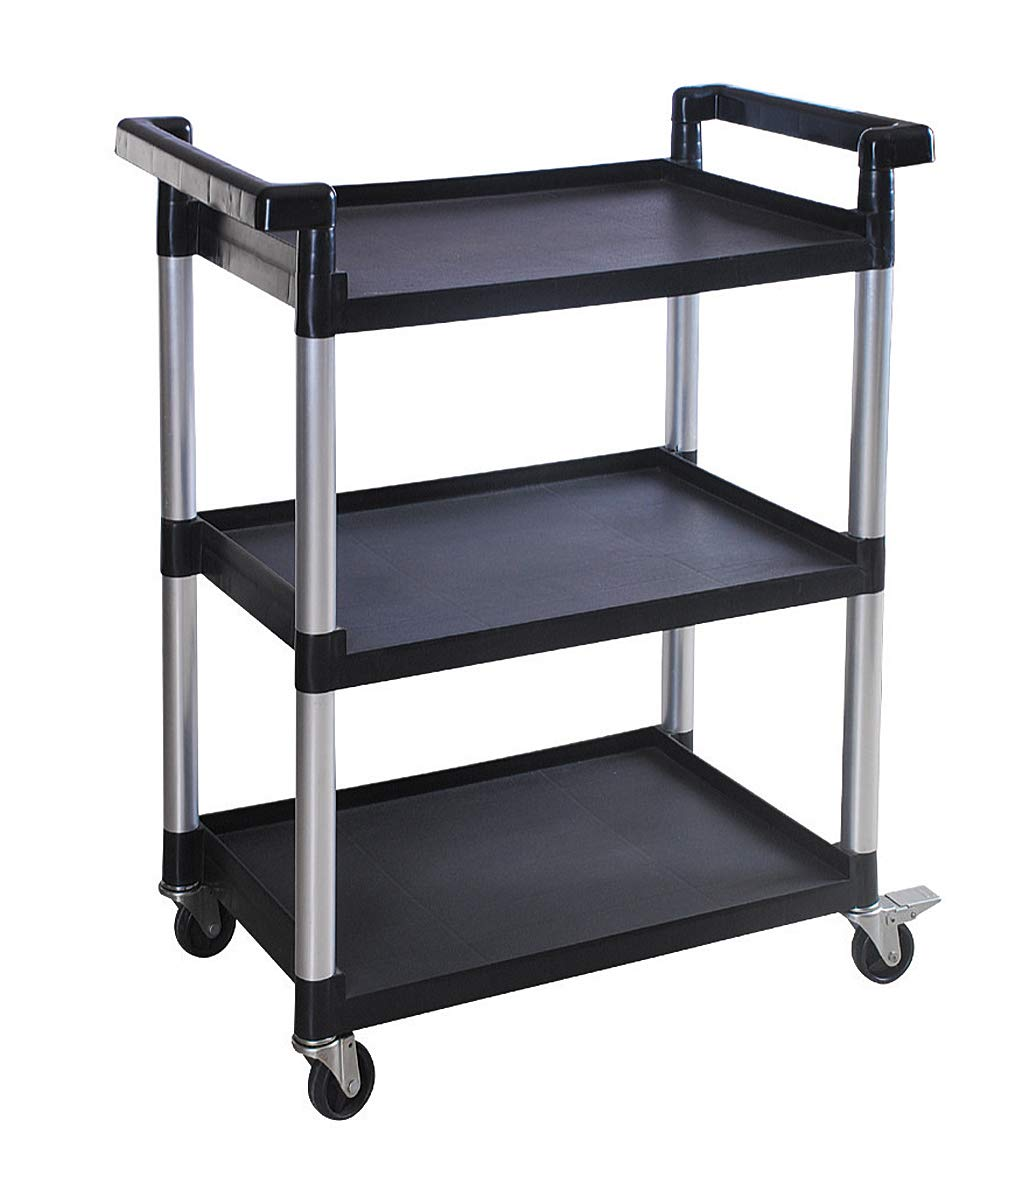 MaxWorks 80774 3-Shelf Utility Plastic Cart with Wheels-225 Lbs Maximum Capacity by MaxWorks